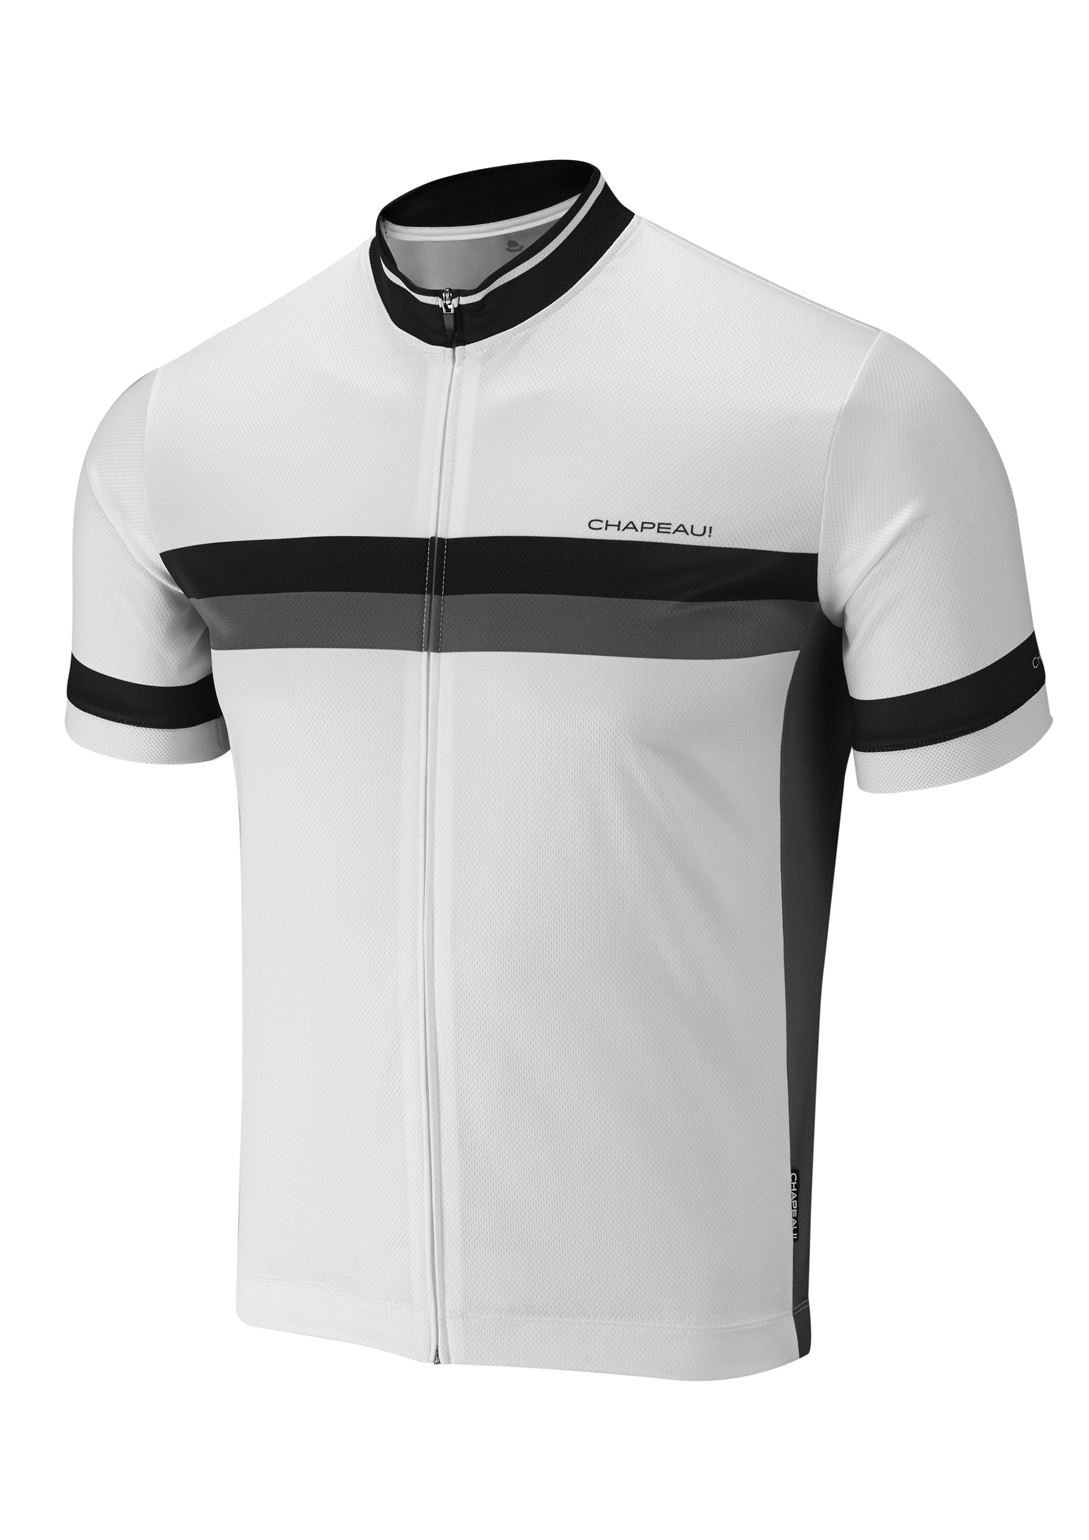 Chapeau Tempo Short Sleeved Jersey White relaxed fit £19.99 961f059ff